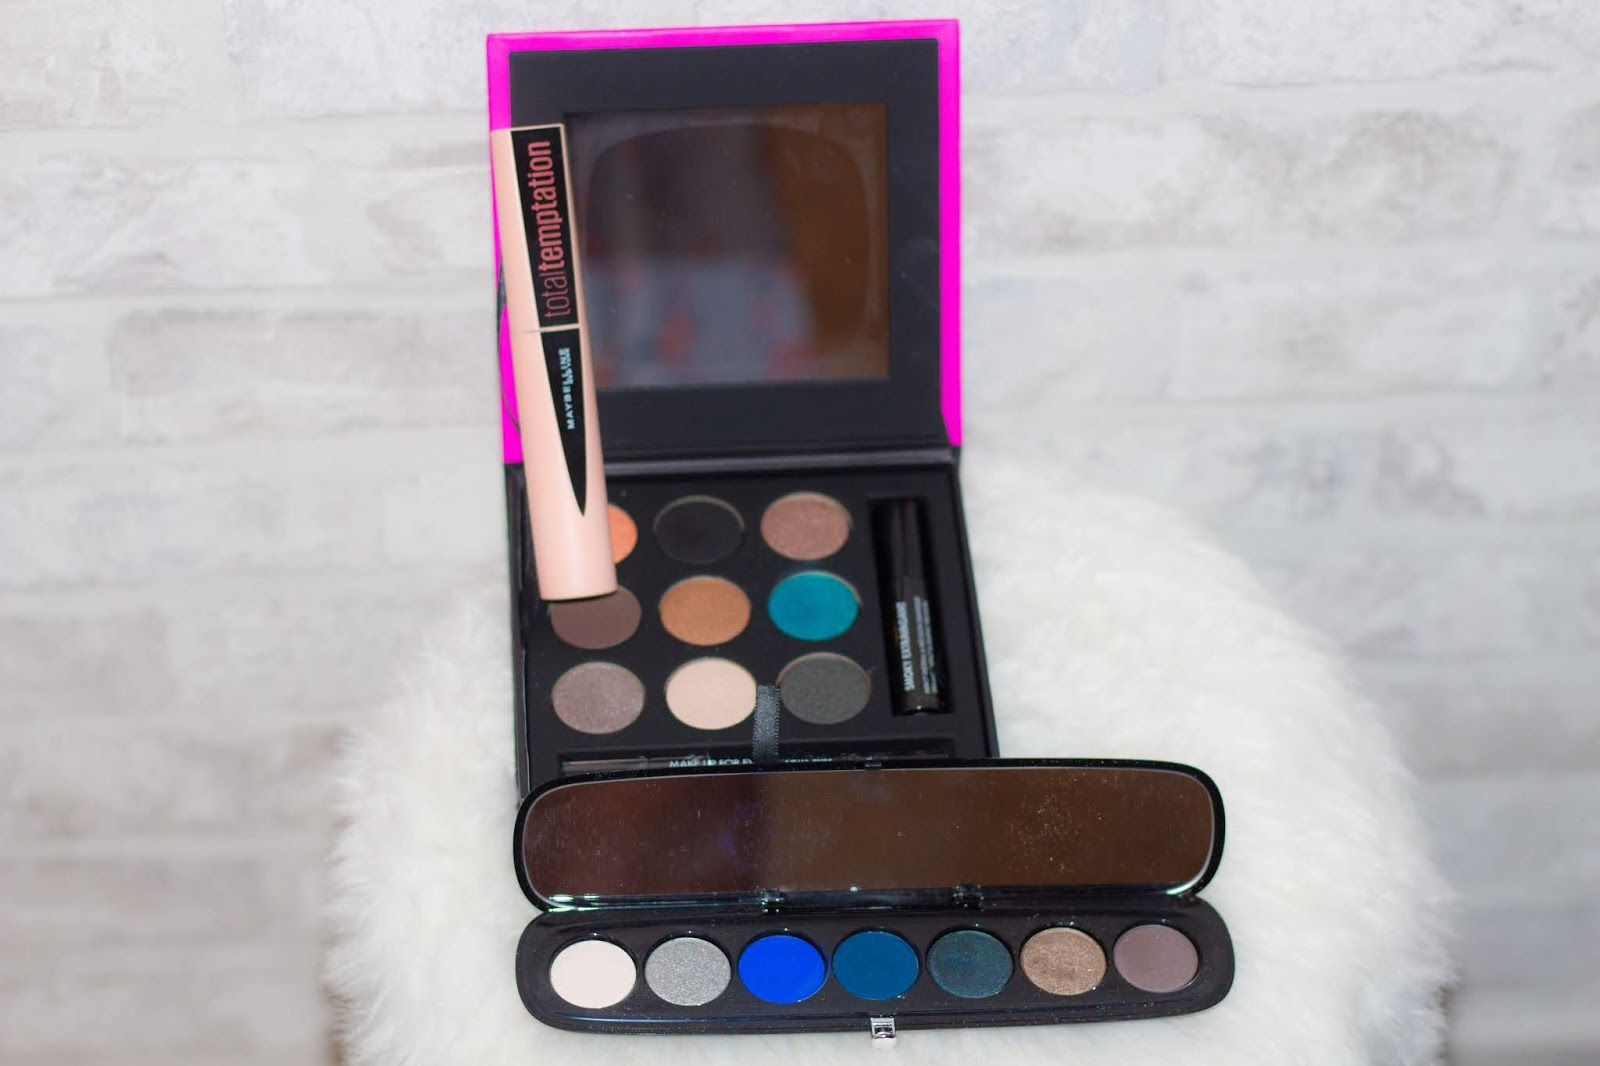 maquillage - yeux - marc jacobs - mufe